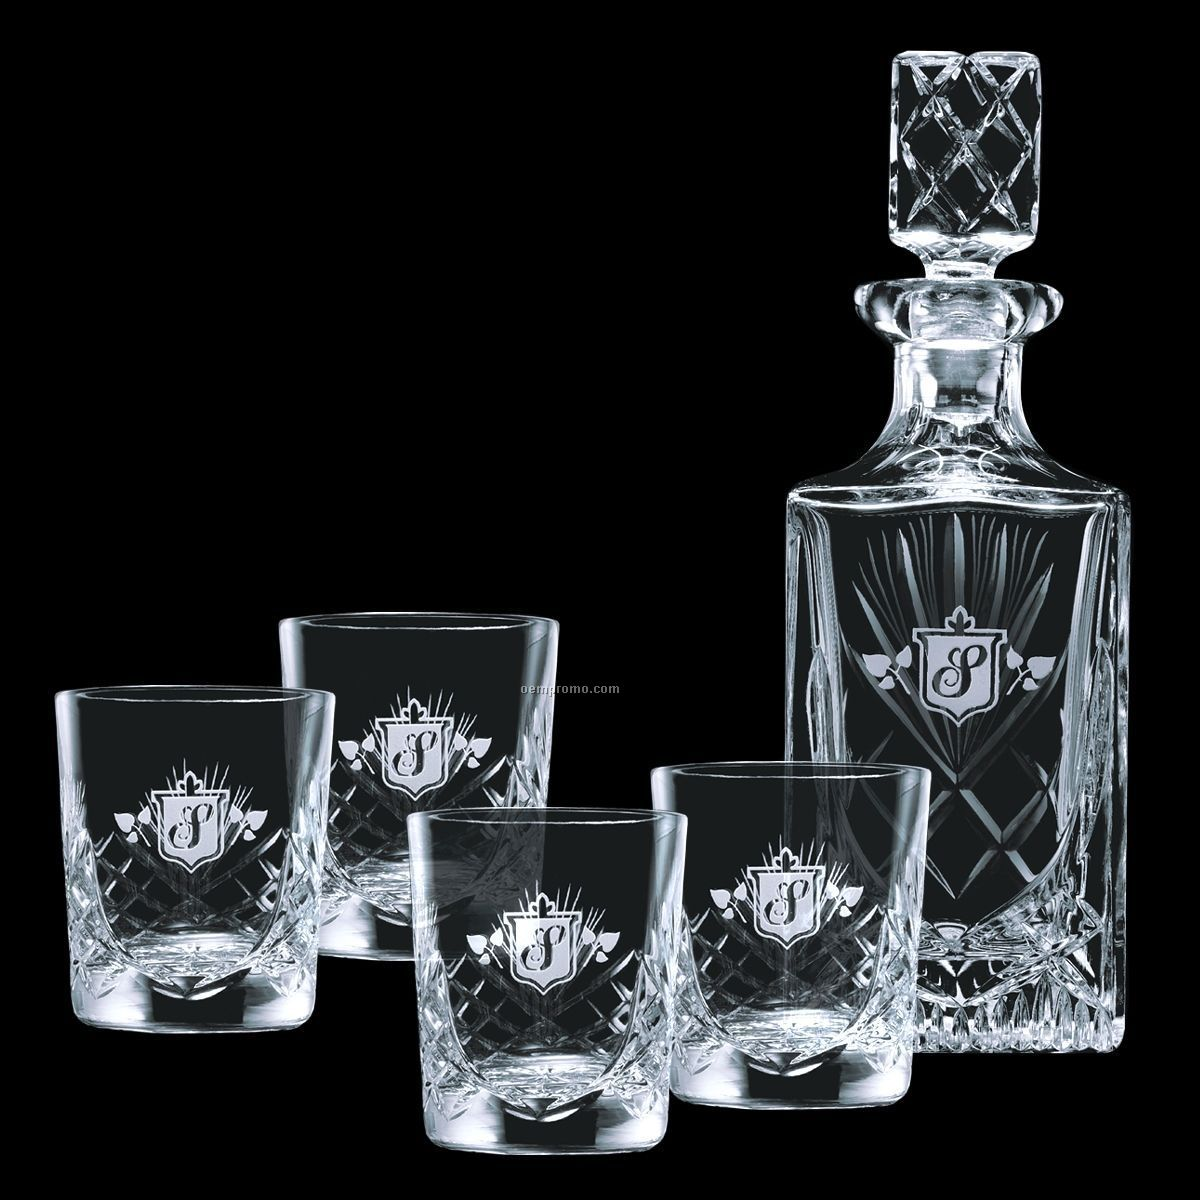 Cavanaugh Square Decanter 4 Double Old Fashioned Glasses